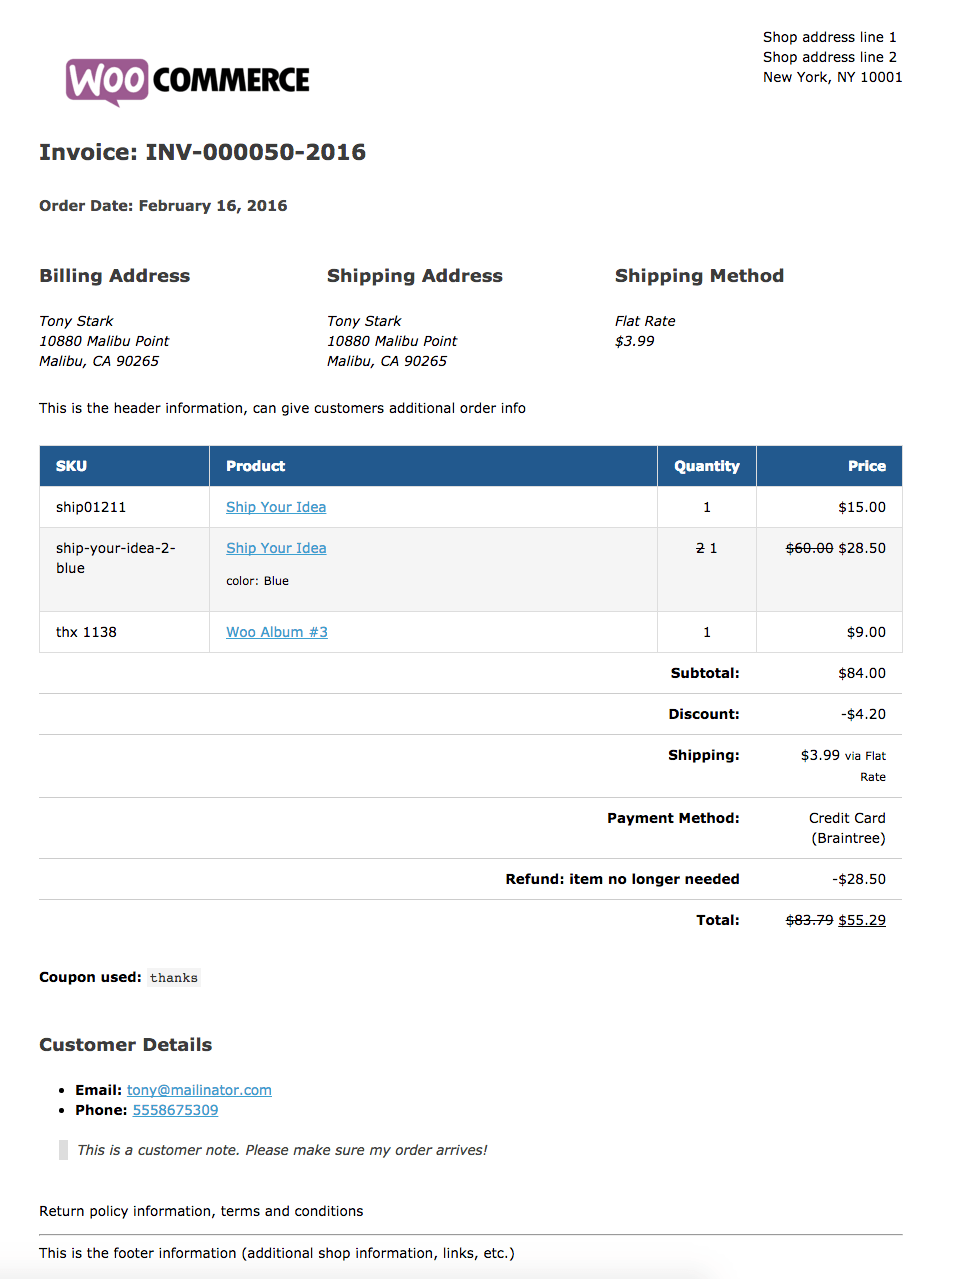 Aldiablosus  Pleasing Print Invoices Amp Packing Lists  Woocommerce With Foxy View A Sample Invoice  With Charming The Commercial Invoice Also Stripe Email Invoice In Addition Billing Invoice Samples And Pay A Fedex Invoice As Well As Template Of Invoice In Word Additionally Vat On Proforma Invoices From Woocommercecom With Aldiablosus  Foxy Print Invoices Amp Packing Lists  Woocommerce With Charming View A Sample Invoice  And Pleasing The Commercial Invoice Also Stripe Email Invoice In Addition Billing Invoice Samples From Woocommercecom